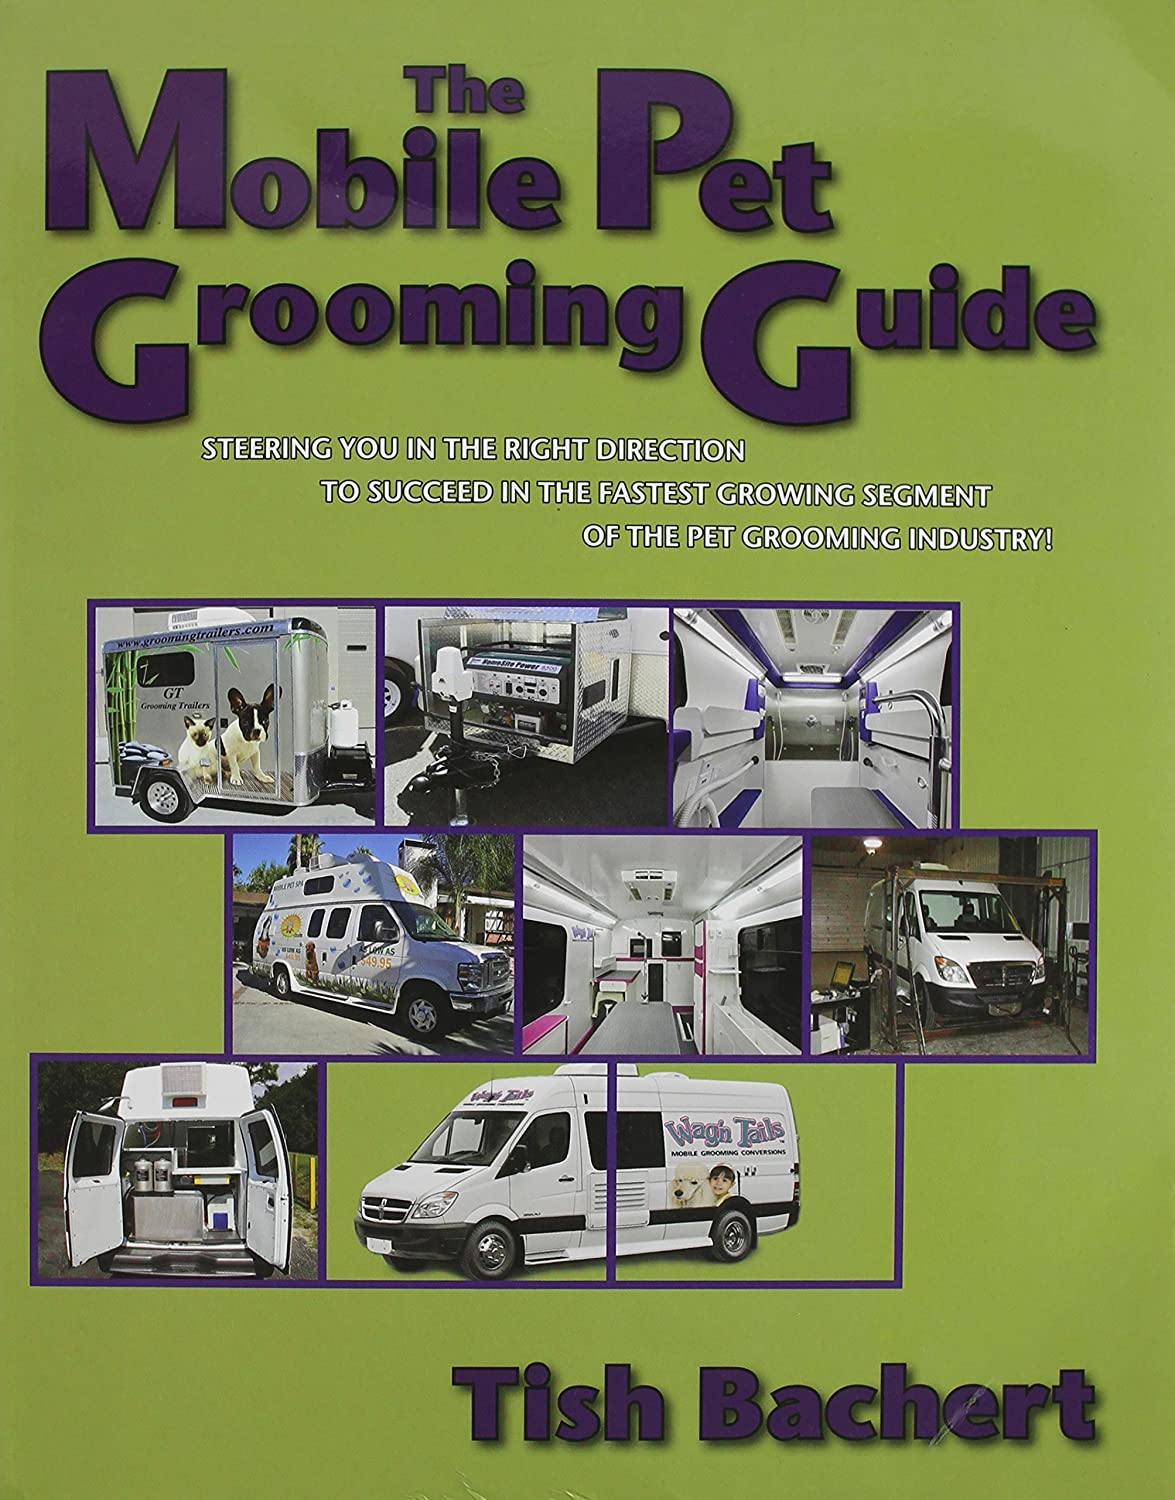 Aaronco Pet Products The Mobile Pet Grooming Guide